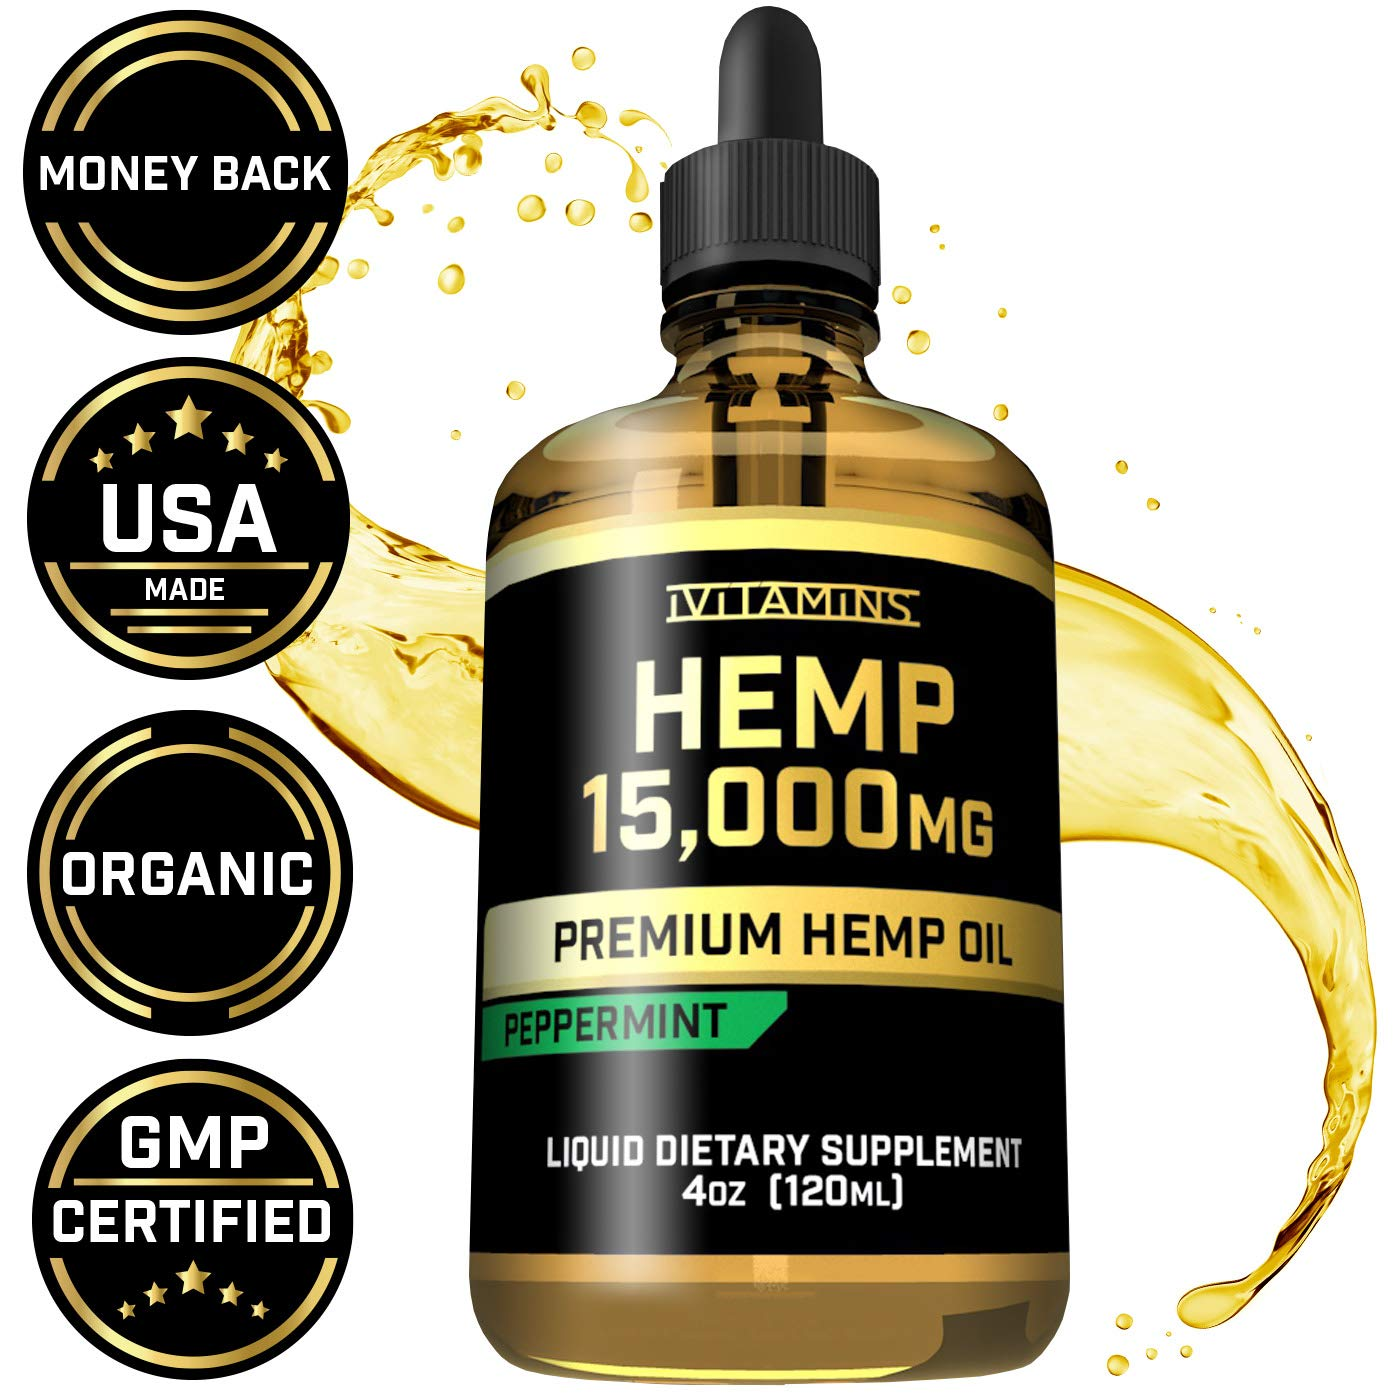 Hemp Oil Drops for Pain & Anxiety - 15,000mg - May Help with Stress, Inflammation, Pain, Sleep, Anxiety, Depression, Nausea + More - Zero THC CBD Cannabidoil - Rich in Omega 3,6,9 (Peppermint)